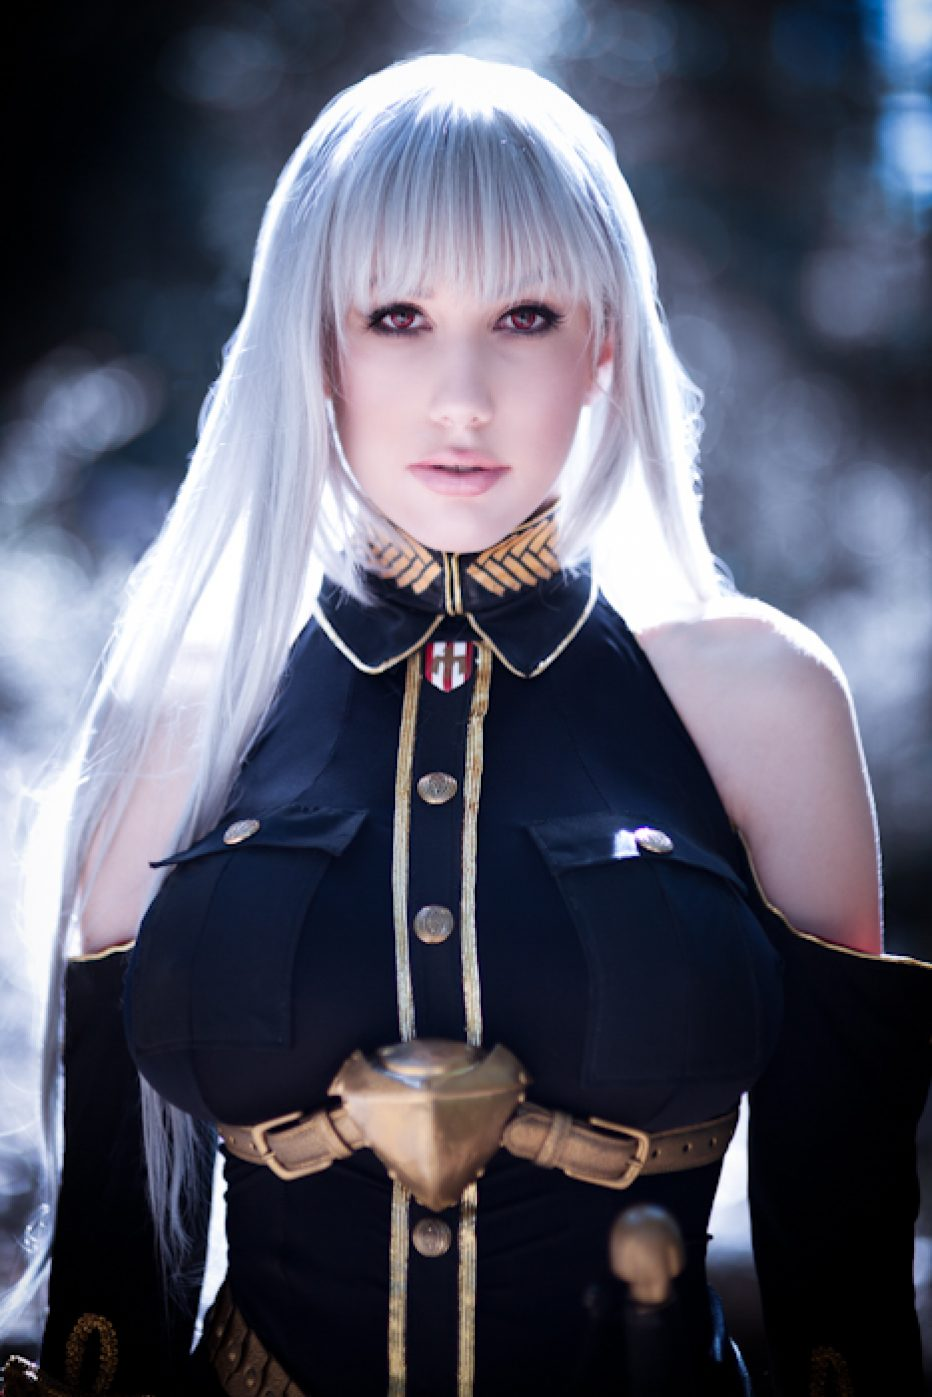 Valkyria-Chronicles-Selvaria-Bles-Cosplay-Gamers-Heroes-4.jpg